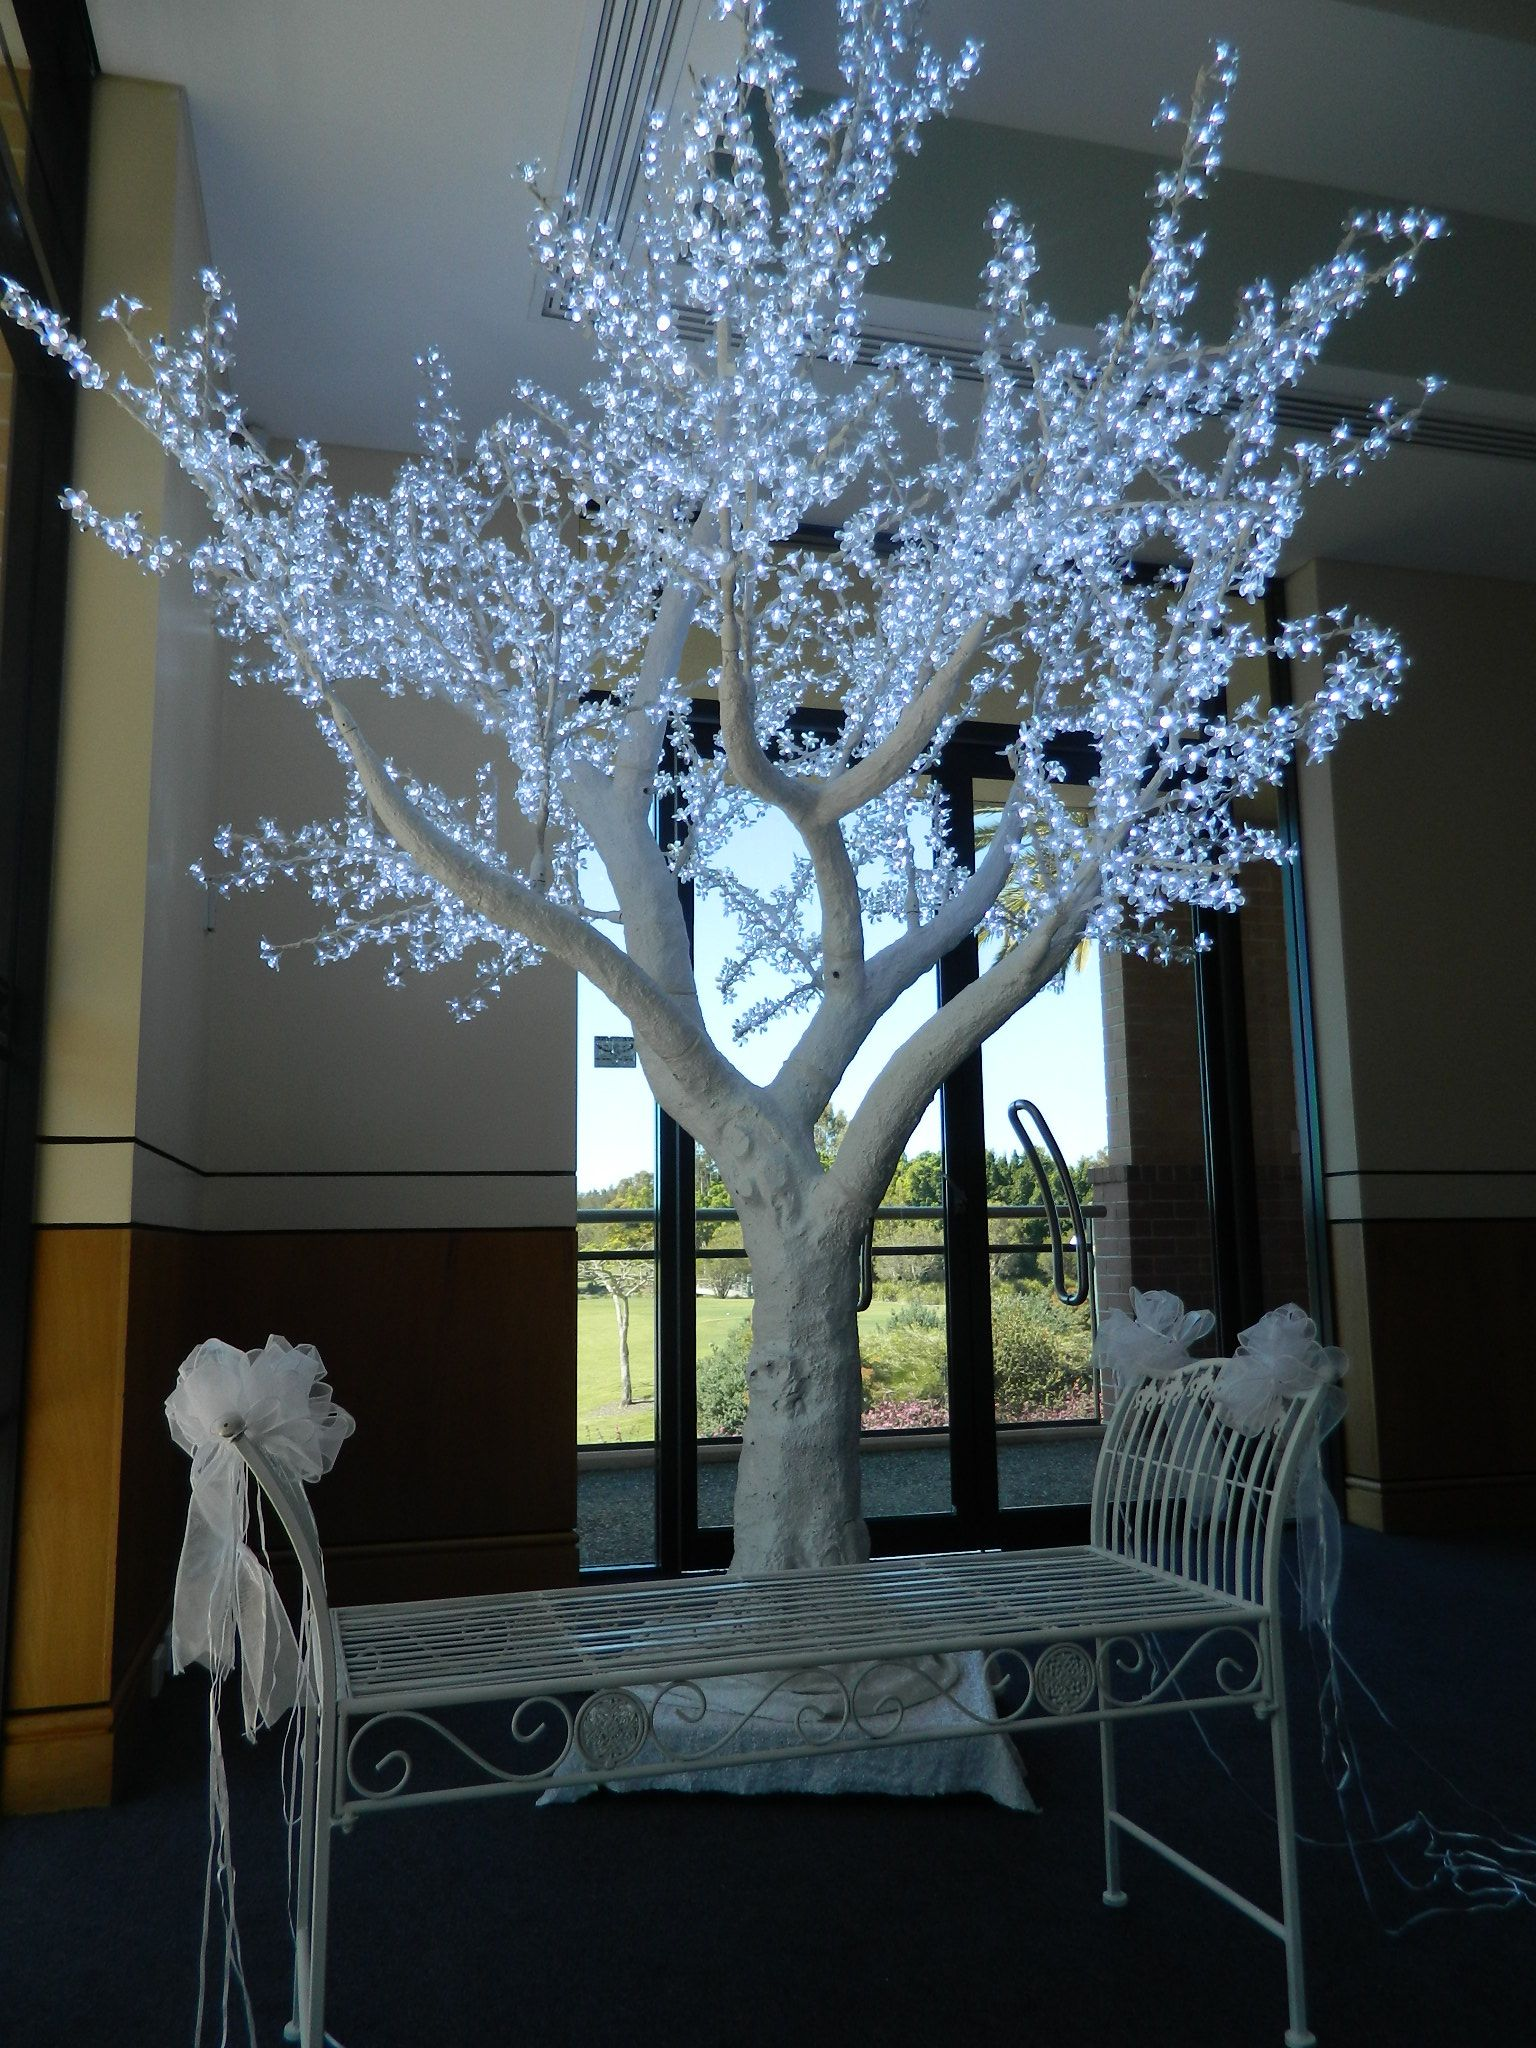 3m White Cherry Blossom Led Tree A Stunning Backdrop For Casual Photos Of Your Guests Or More Formal Ones Of The Wedd Led Tree Tree Branch Decor Branch Decor